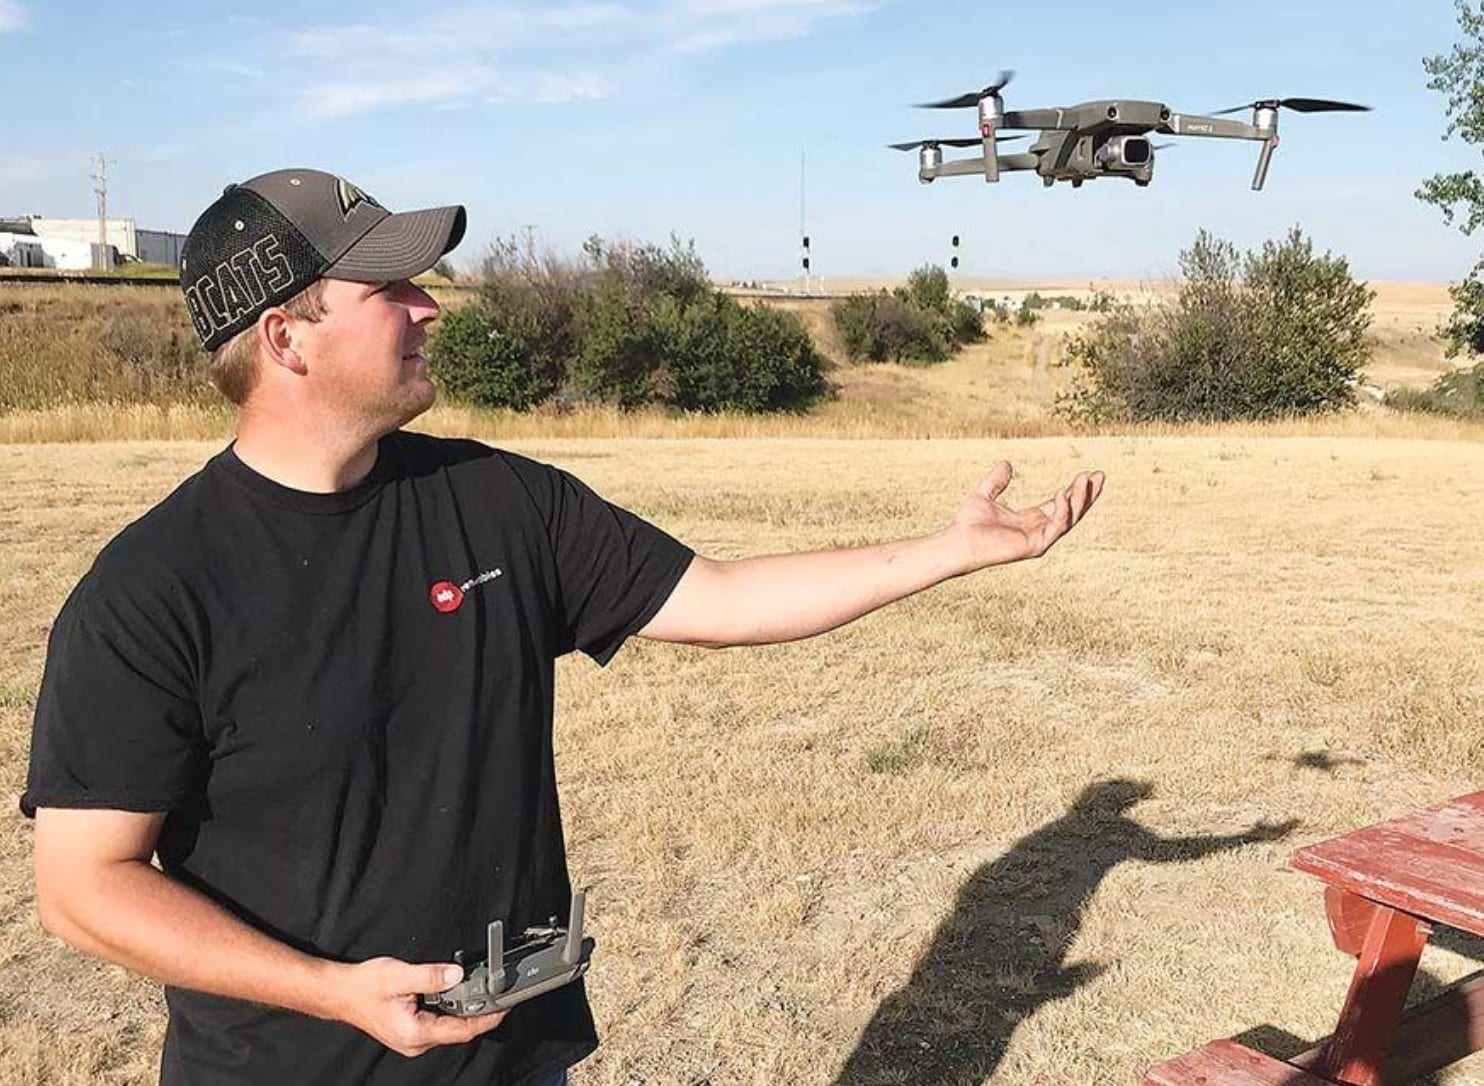 Farmers use drones to remotely identify livestock